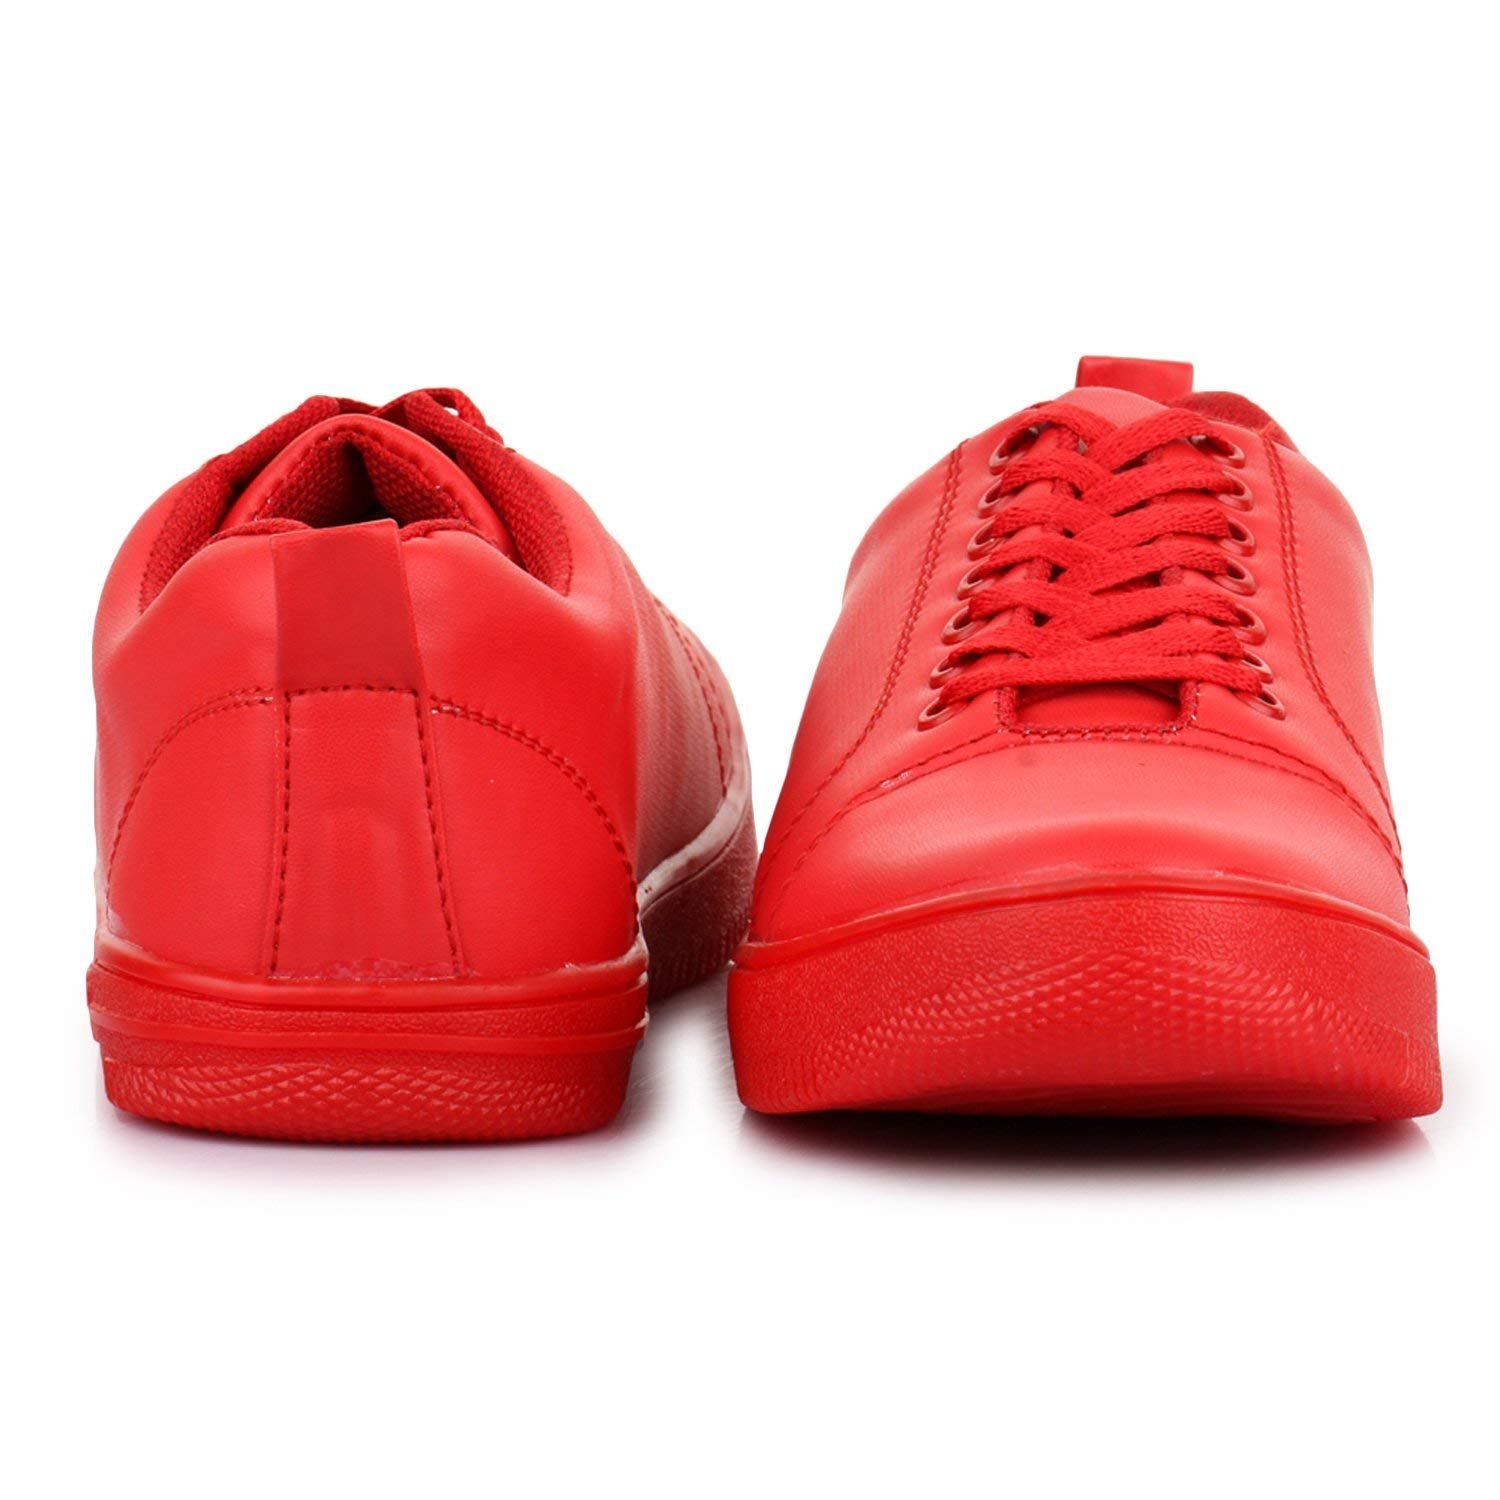 Shoeniverse Red Sneakers For Men Buy Online At Low Prices In India